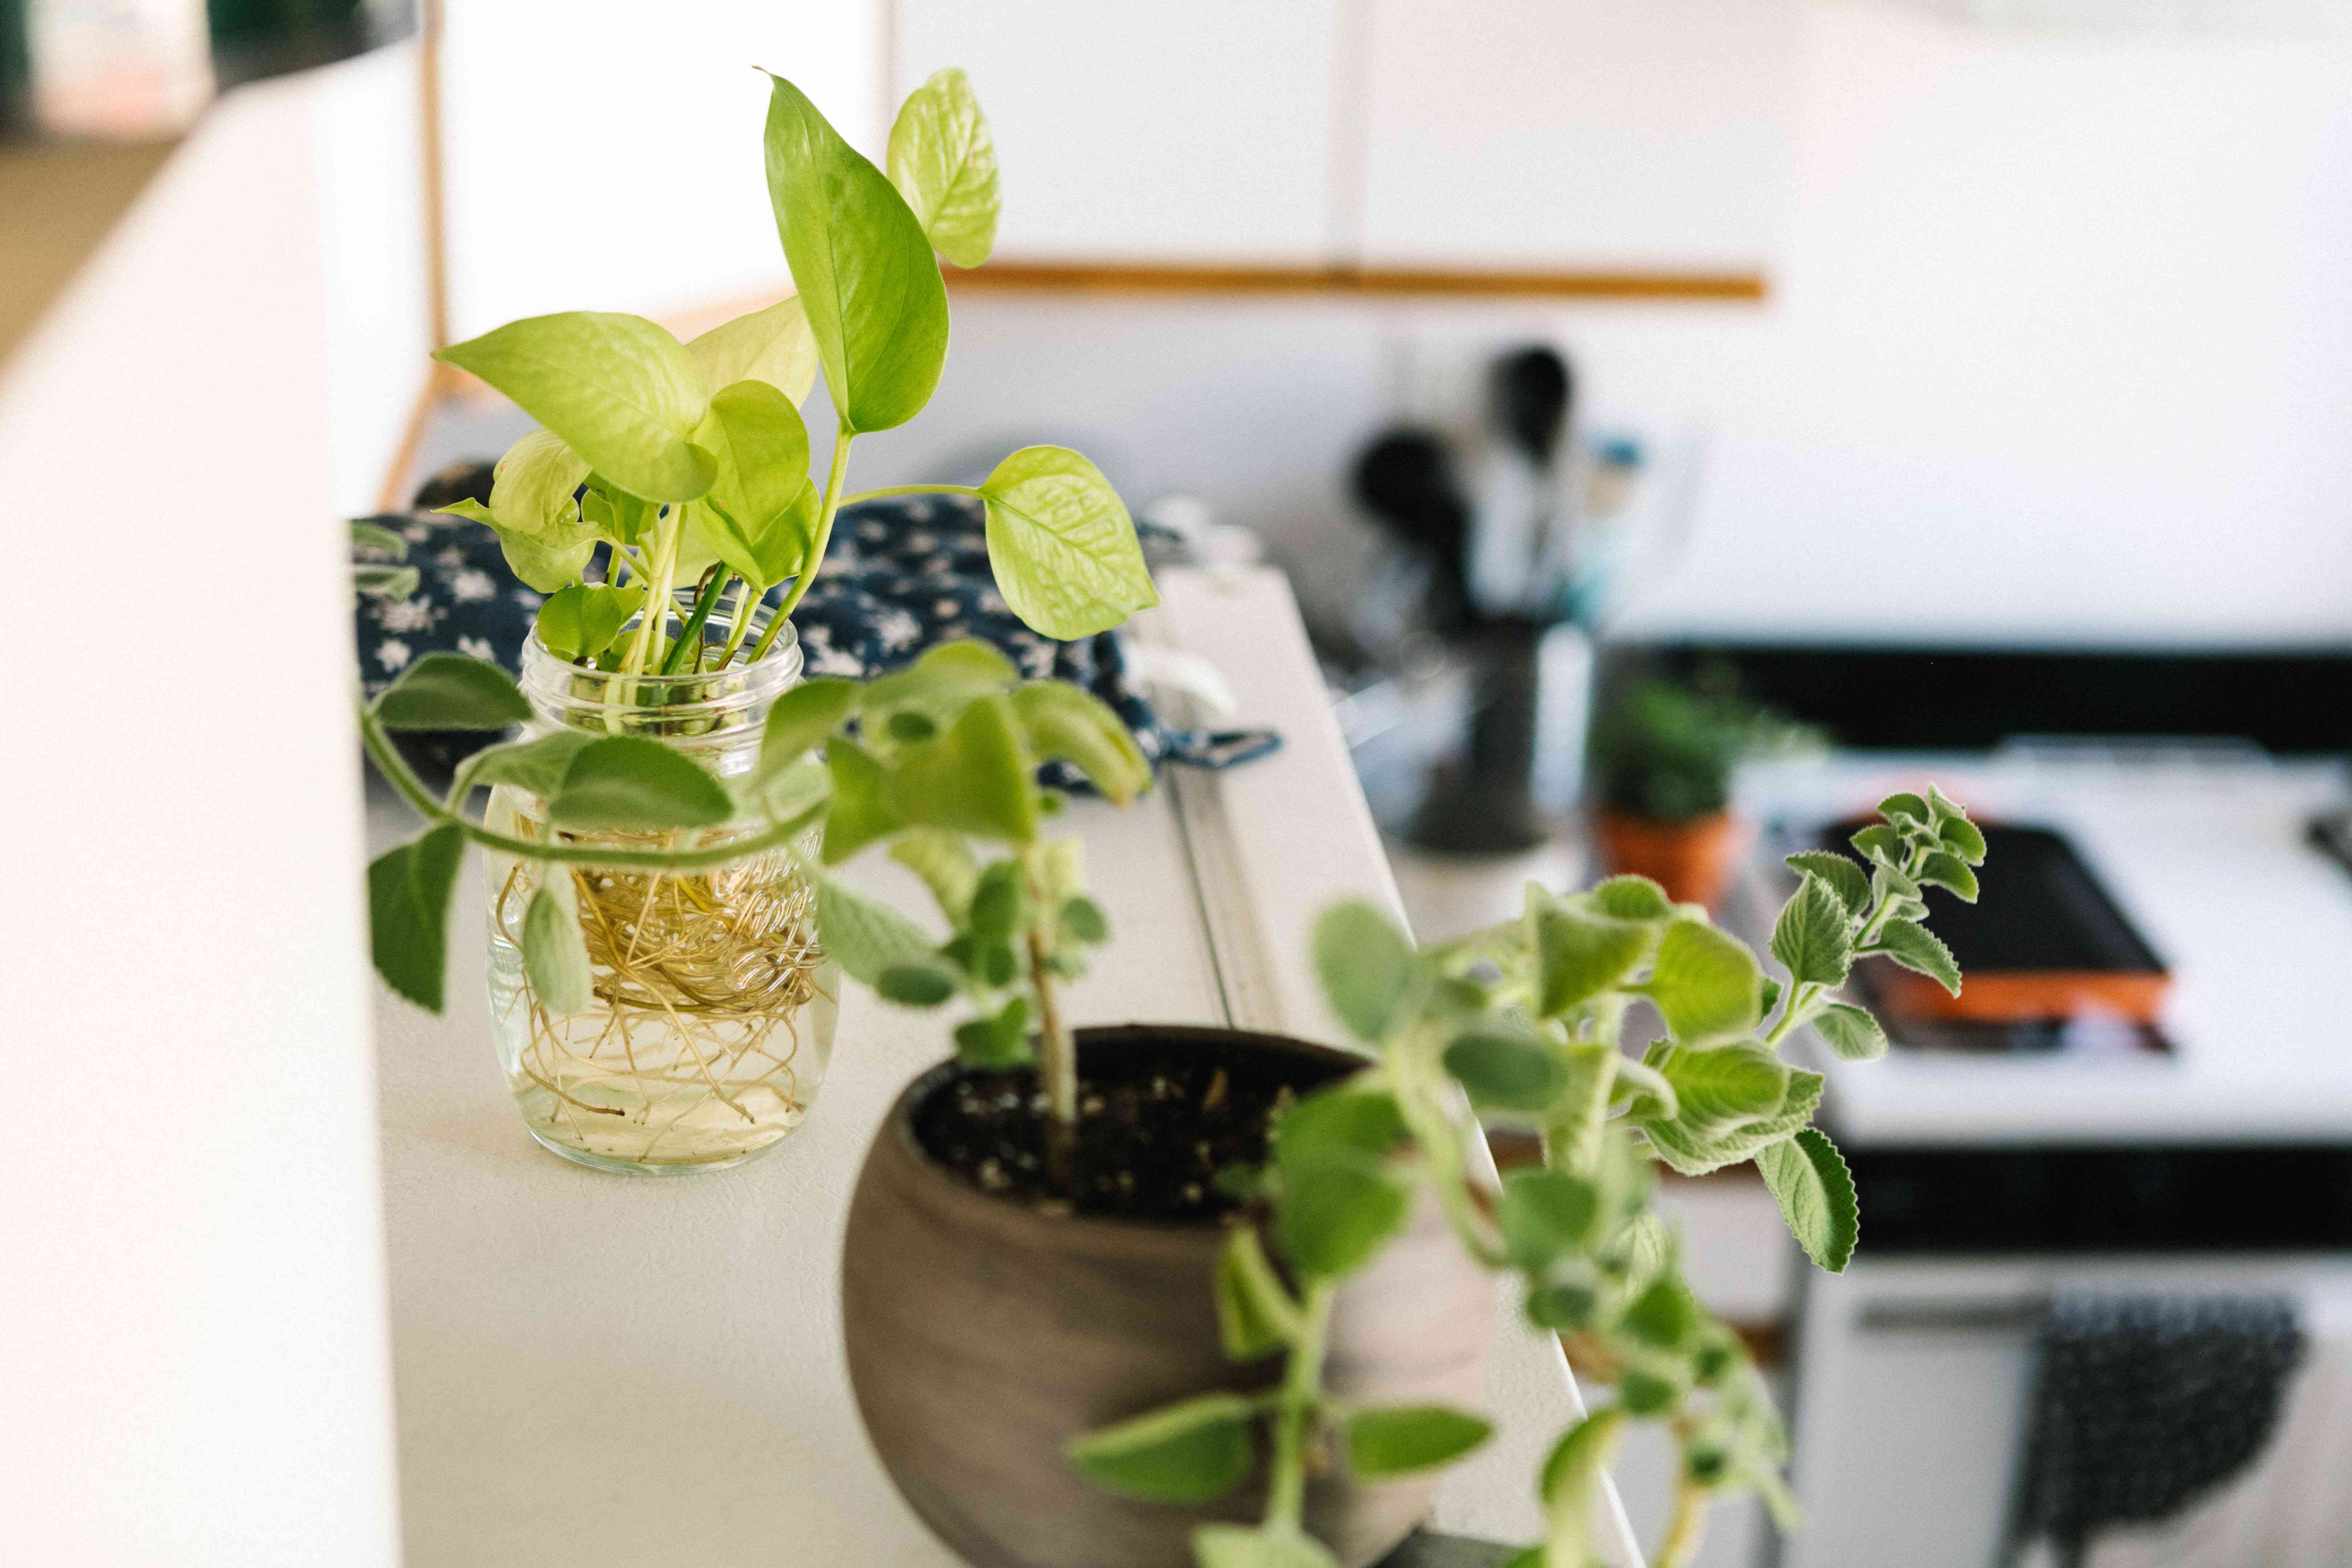 golden pothos cutting in glass jar in the kitchen